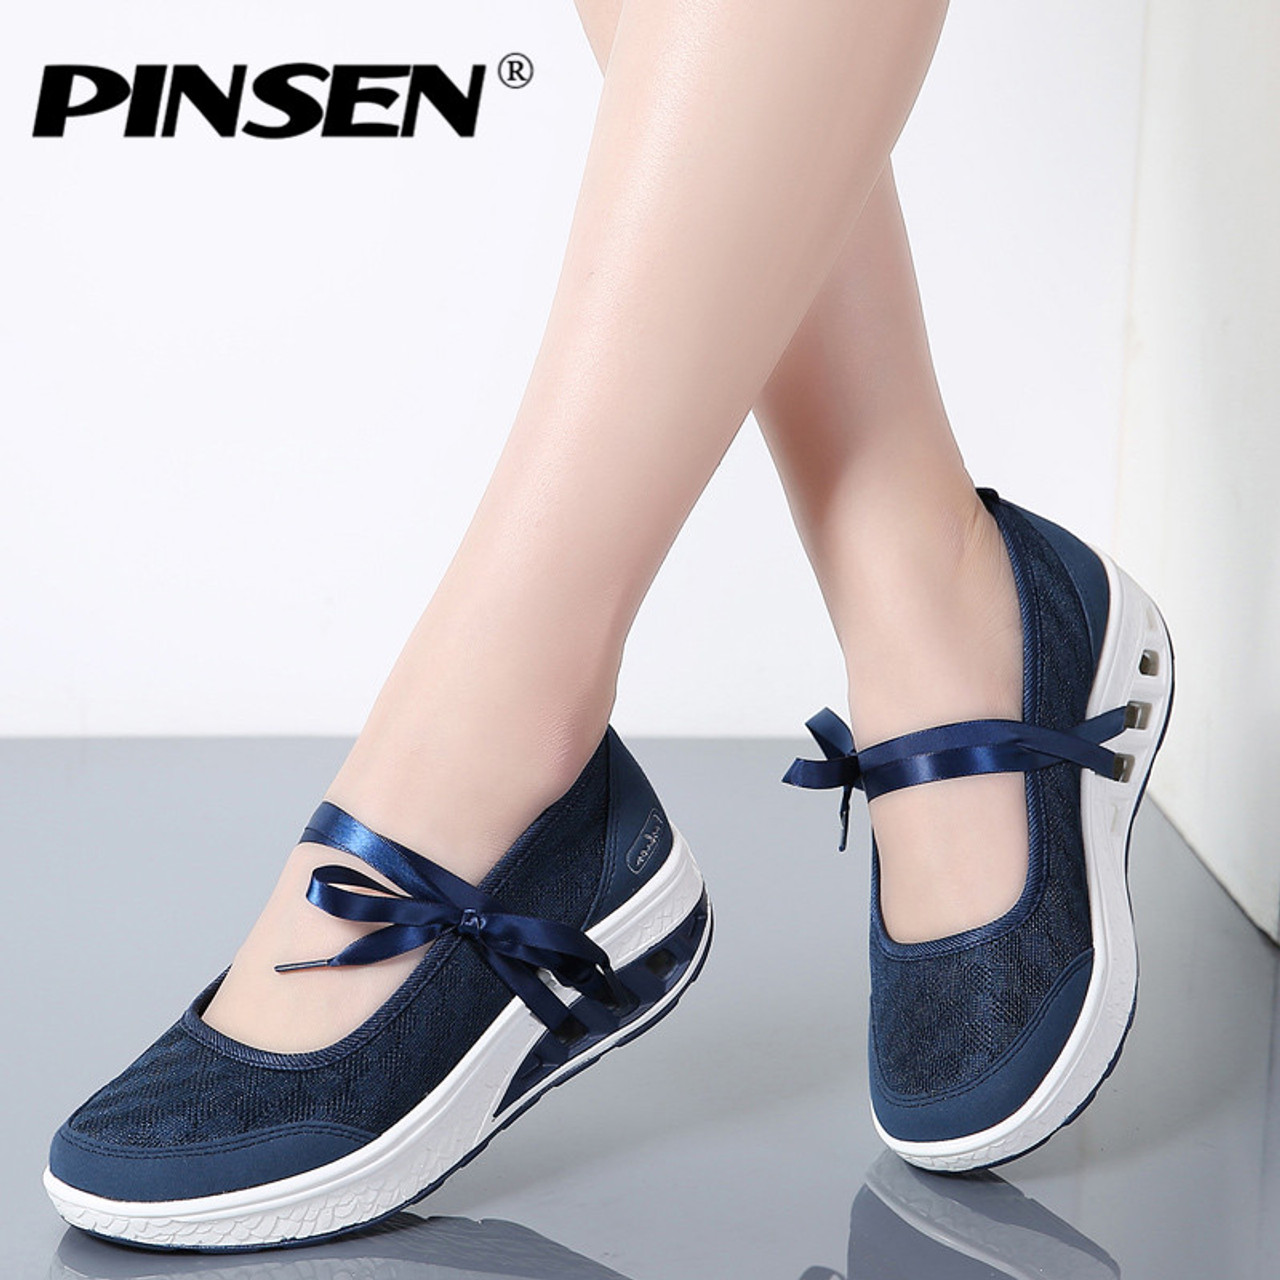 4b8278b39a8 PINSEN 2019 Sneakers Flat Platform Women Shoes Slip On Casual Ladies Flats  Loafers Shoes Woman Moccasins ...